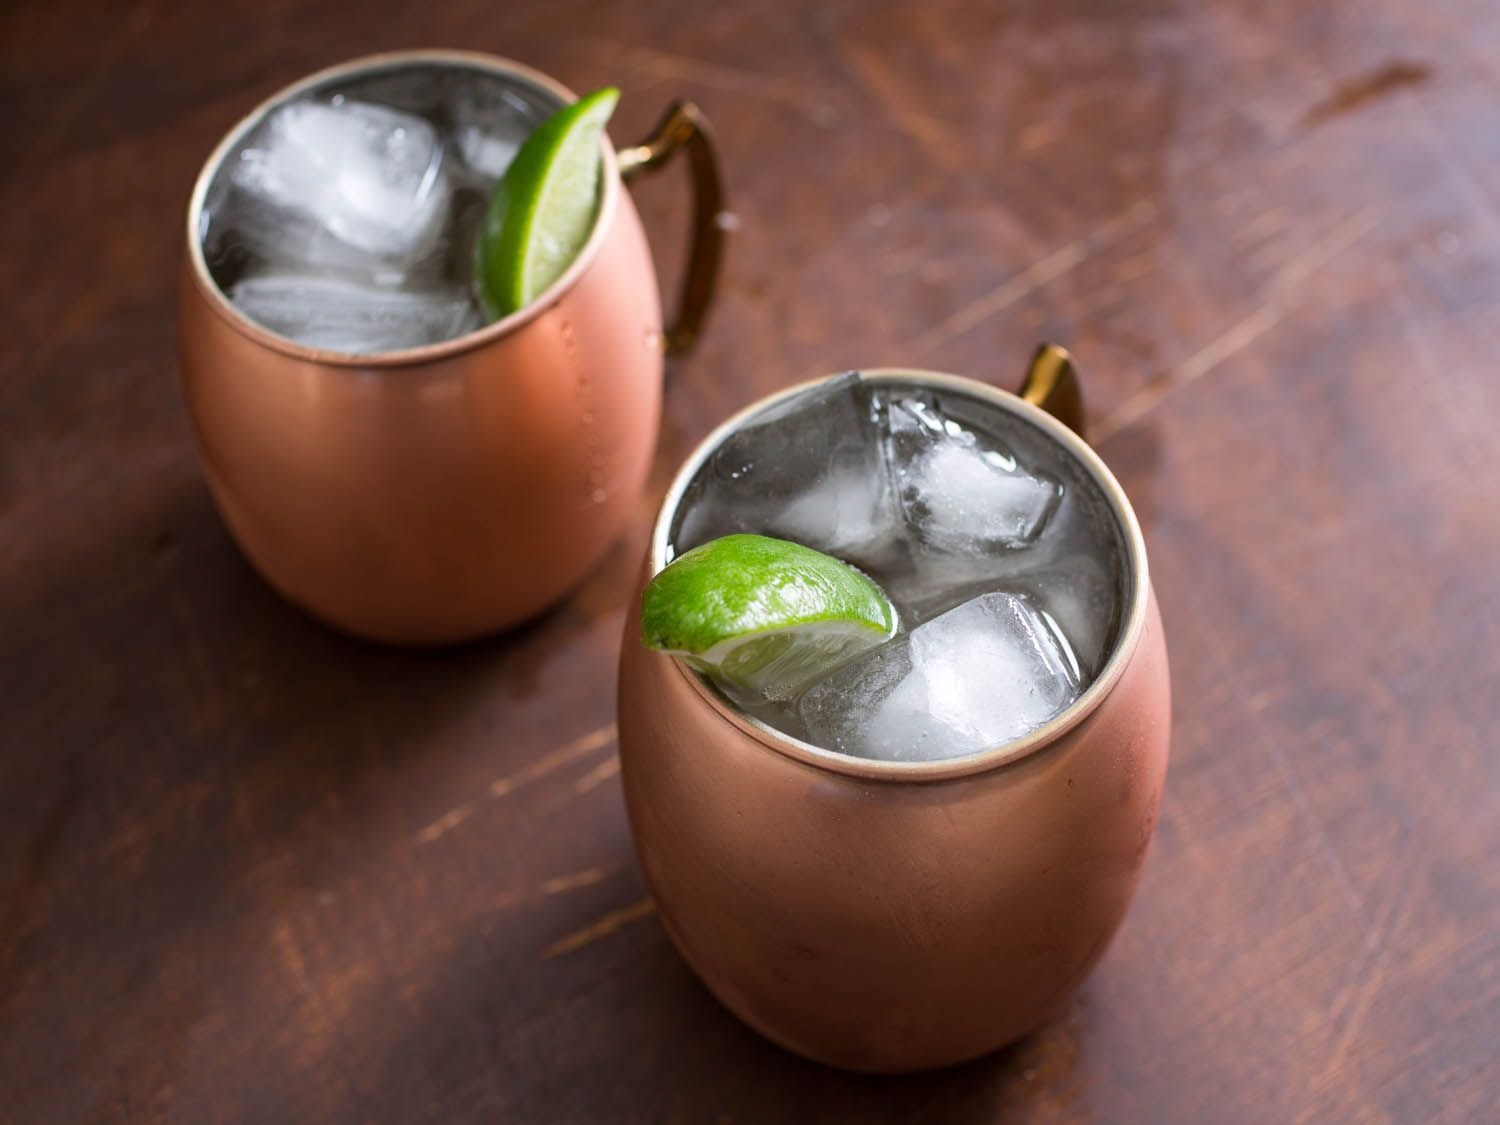 20150410-moscow-mule-vicky-wasik-1.jpg